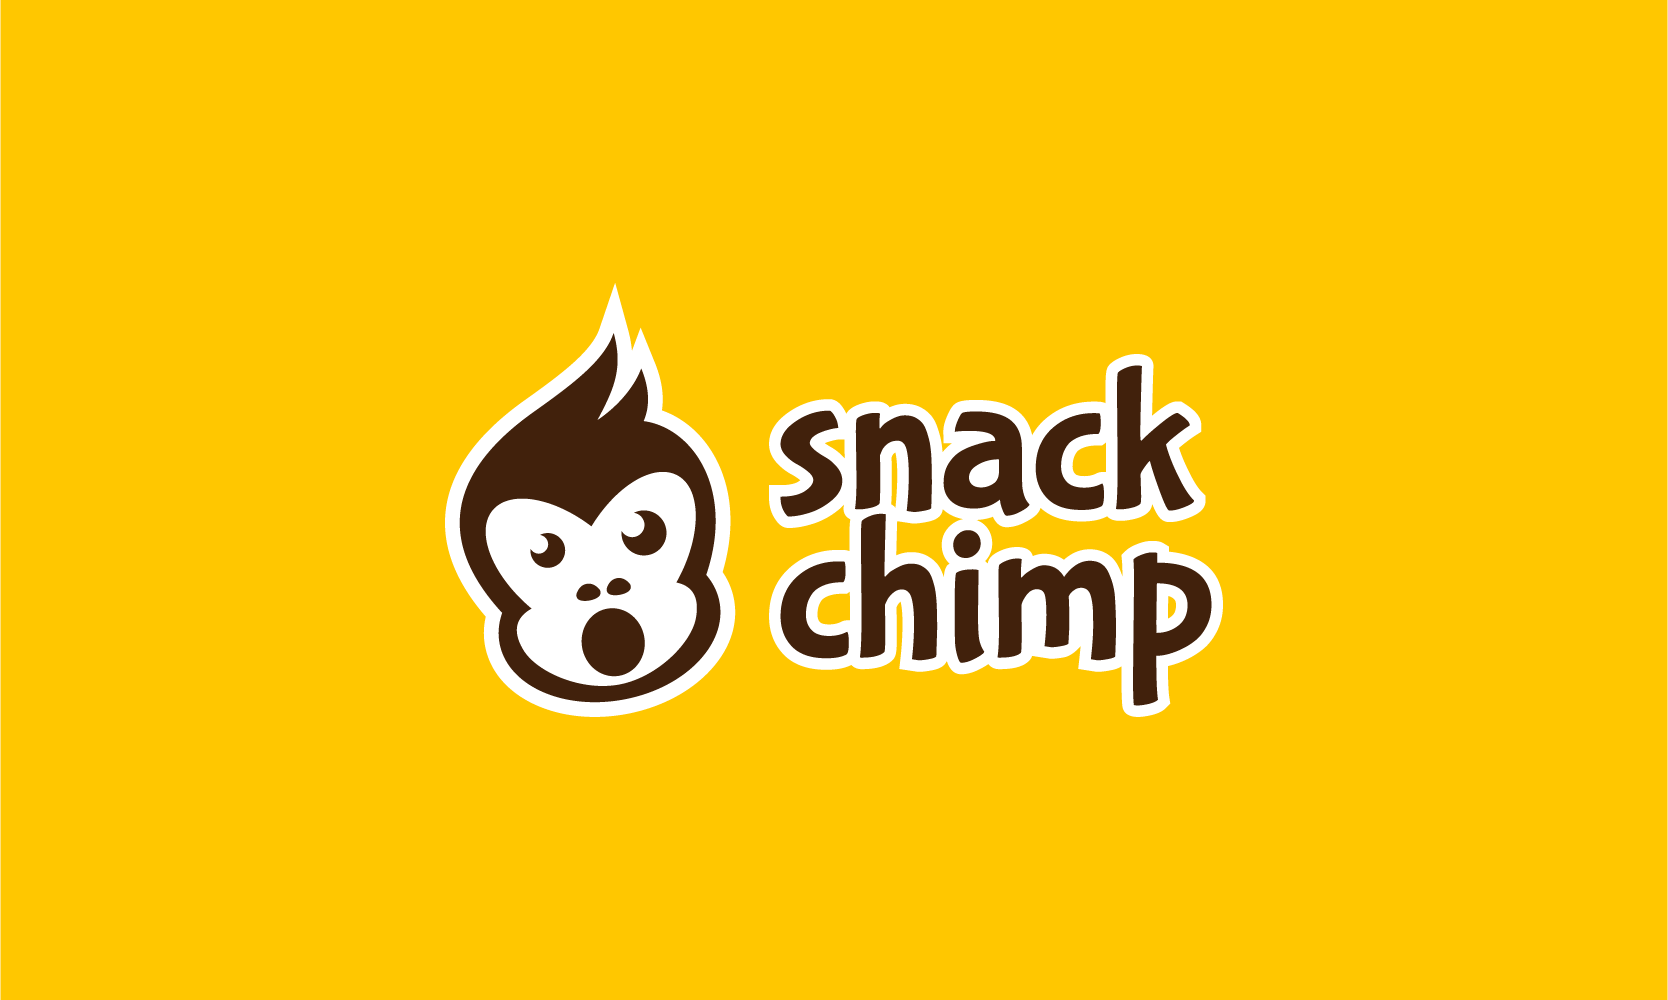 SnackChimp.com